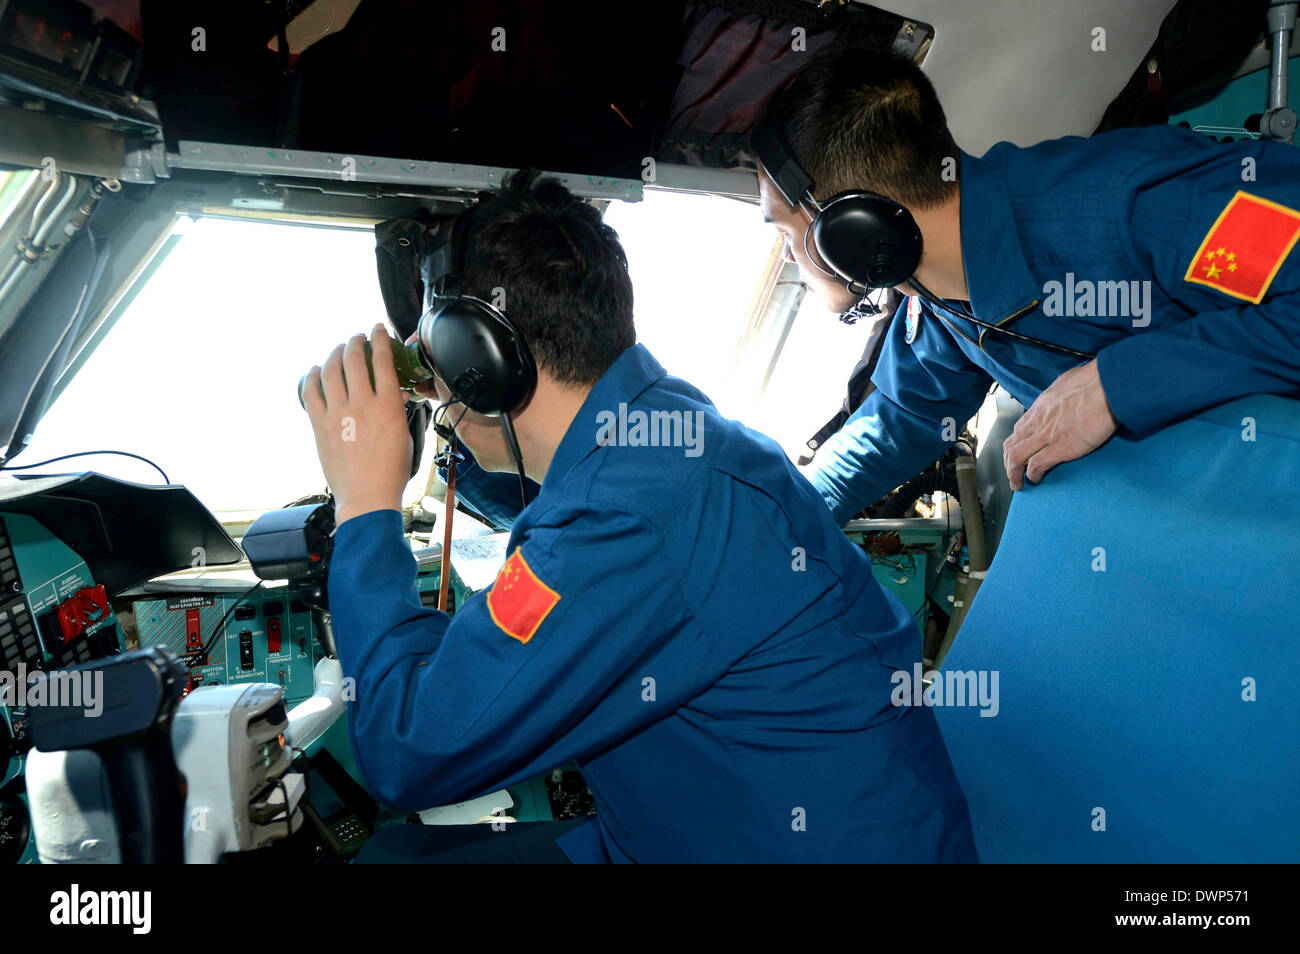 Malaysia, Malaysia. 12th Mar, 2014. Crew members of Chinese Air Force search the sea areas where the missing Malaysia Airlines flight MH370 lost contact, Malaysia, March 12, 2014. Multinational search operation to locate missing Malaysia Airlines flight MH370 has been expanded to two areas with more countries joining in the mission. Credit:  Shen Ling/Xinhua/Alamy Live News - Stock Image